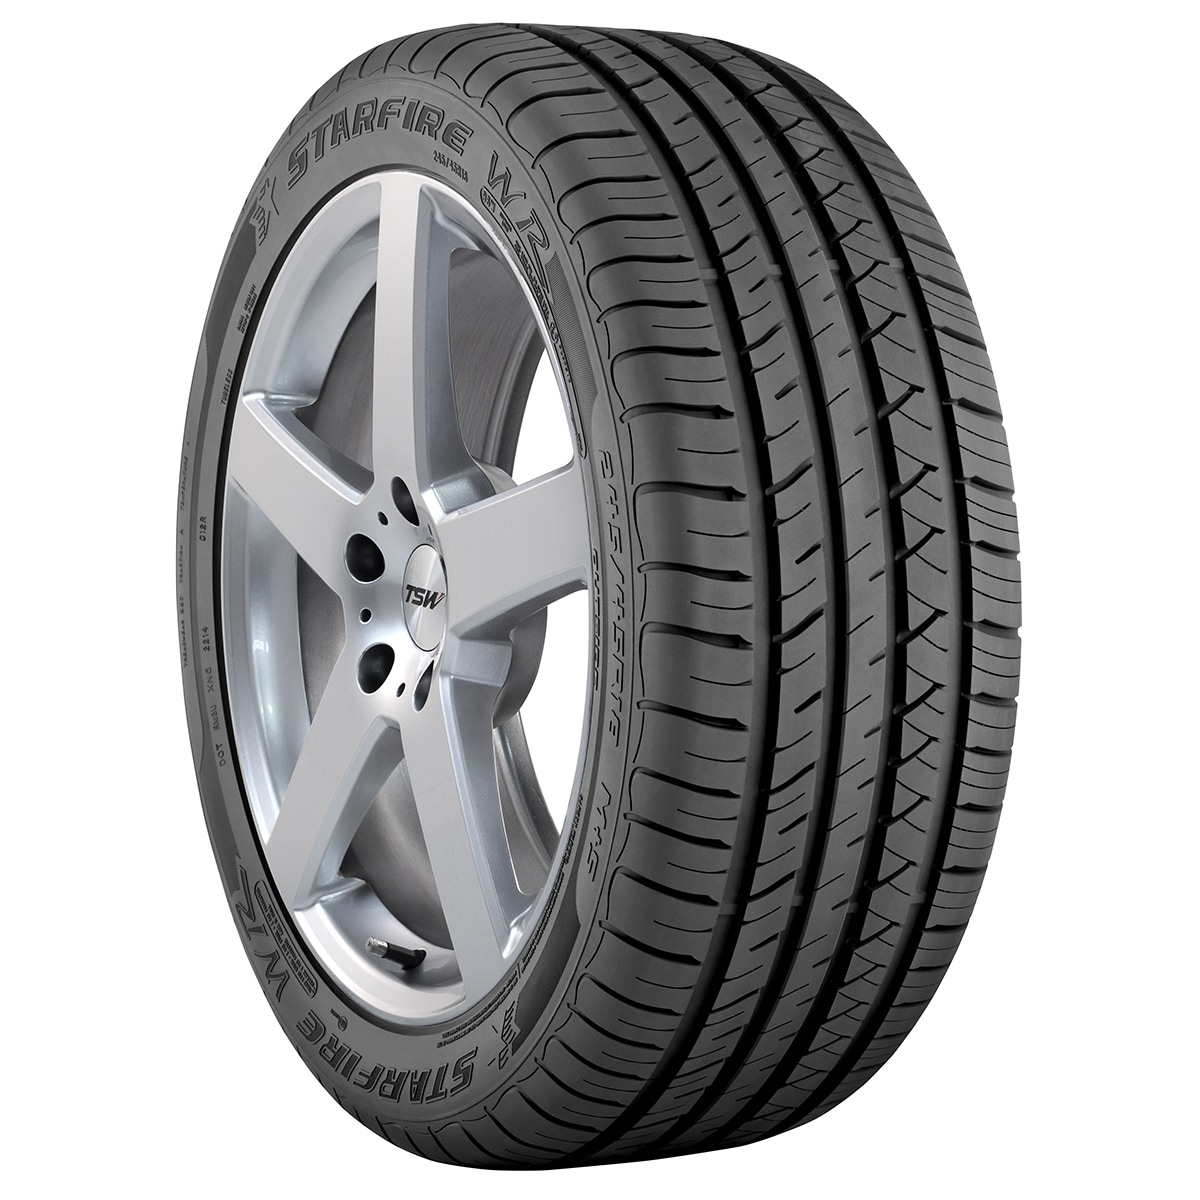 Starfire WR Performance Tire - 225/50R16 92W (Black)